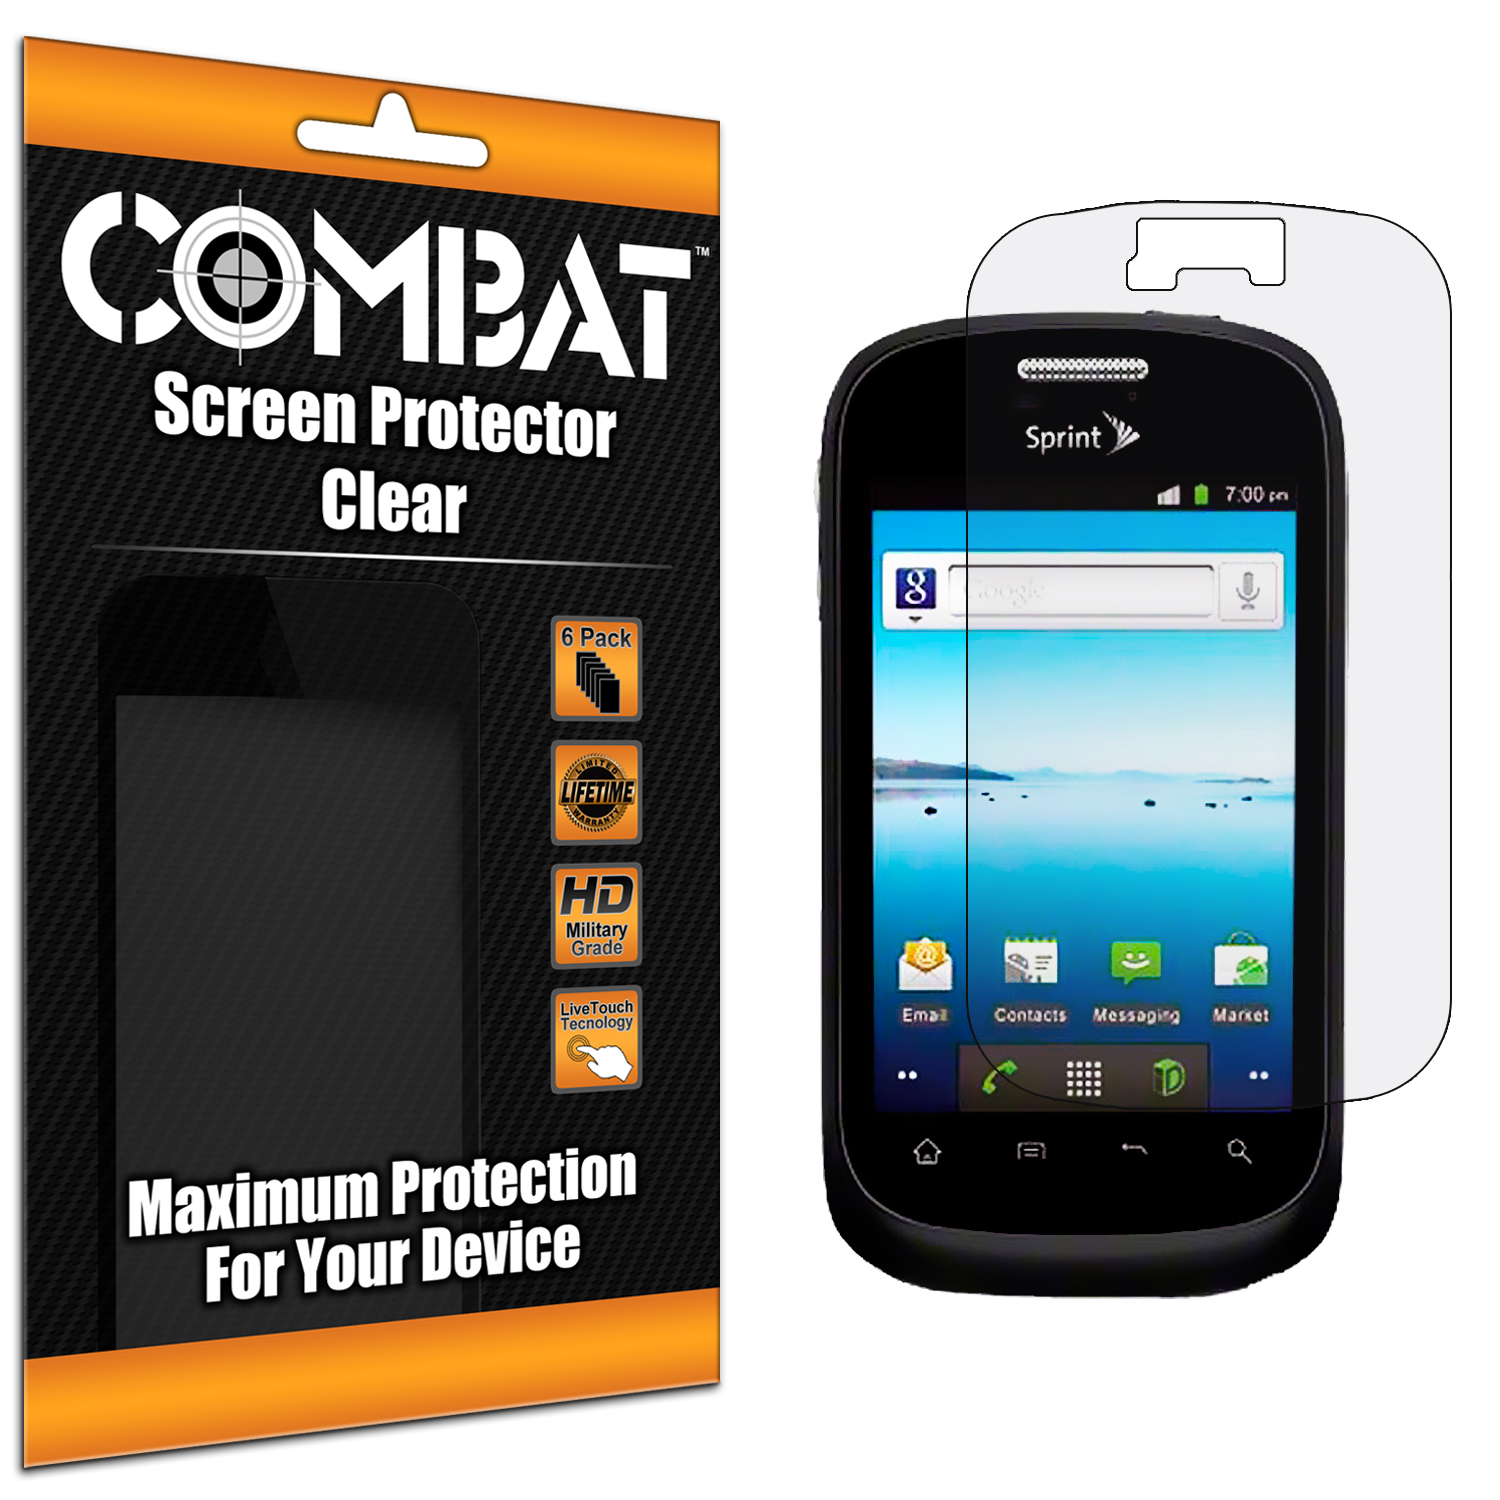 ZTE Fury N850 Combat 6 Pack HD Clear Screen Protector